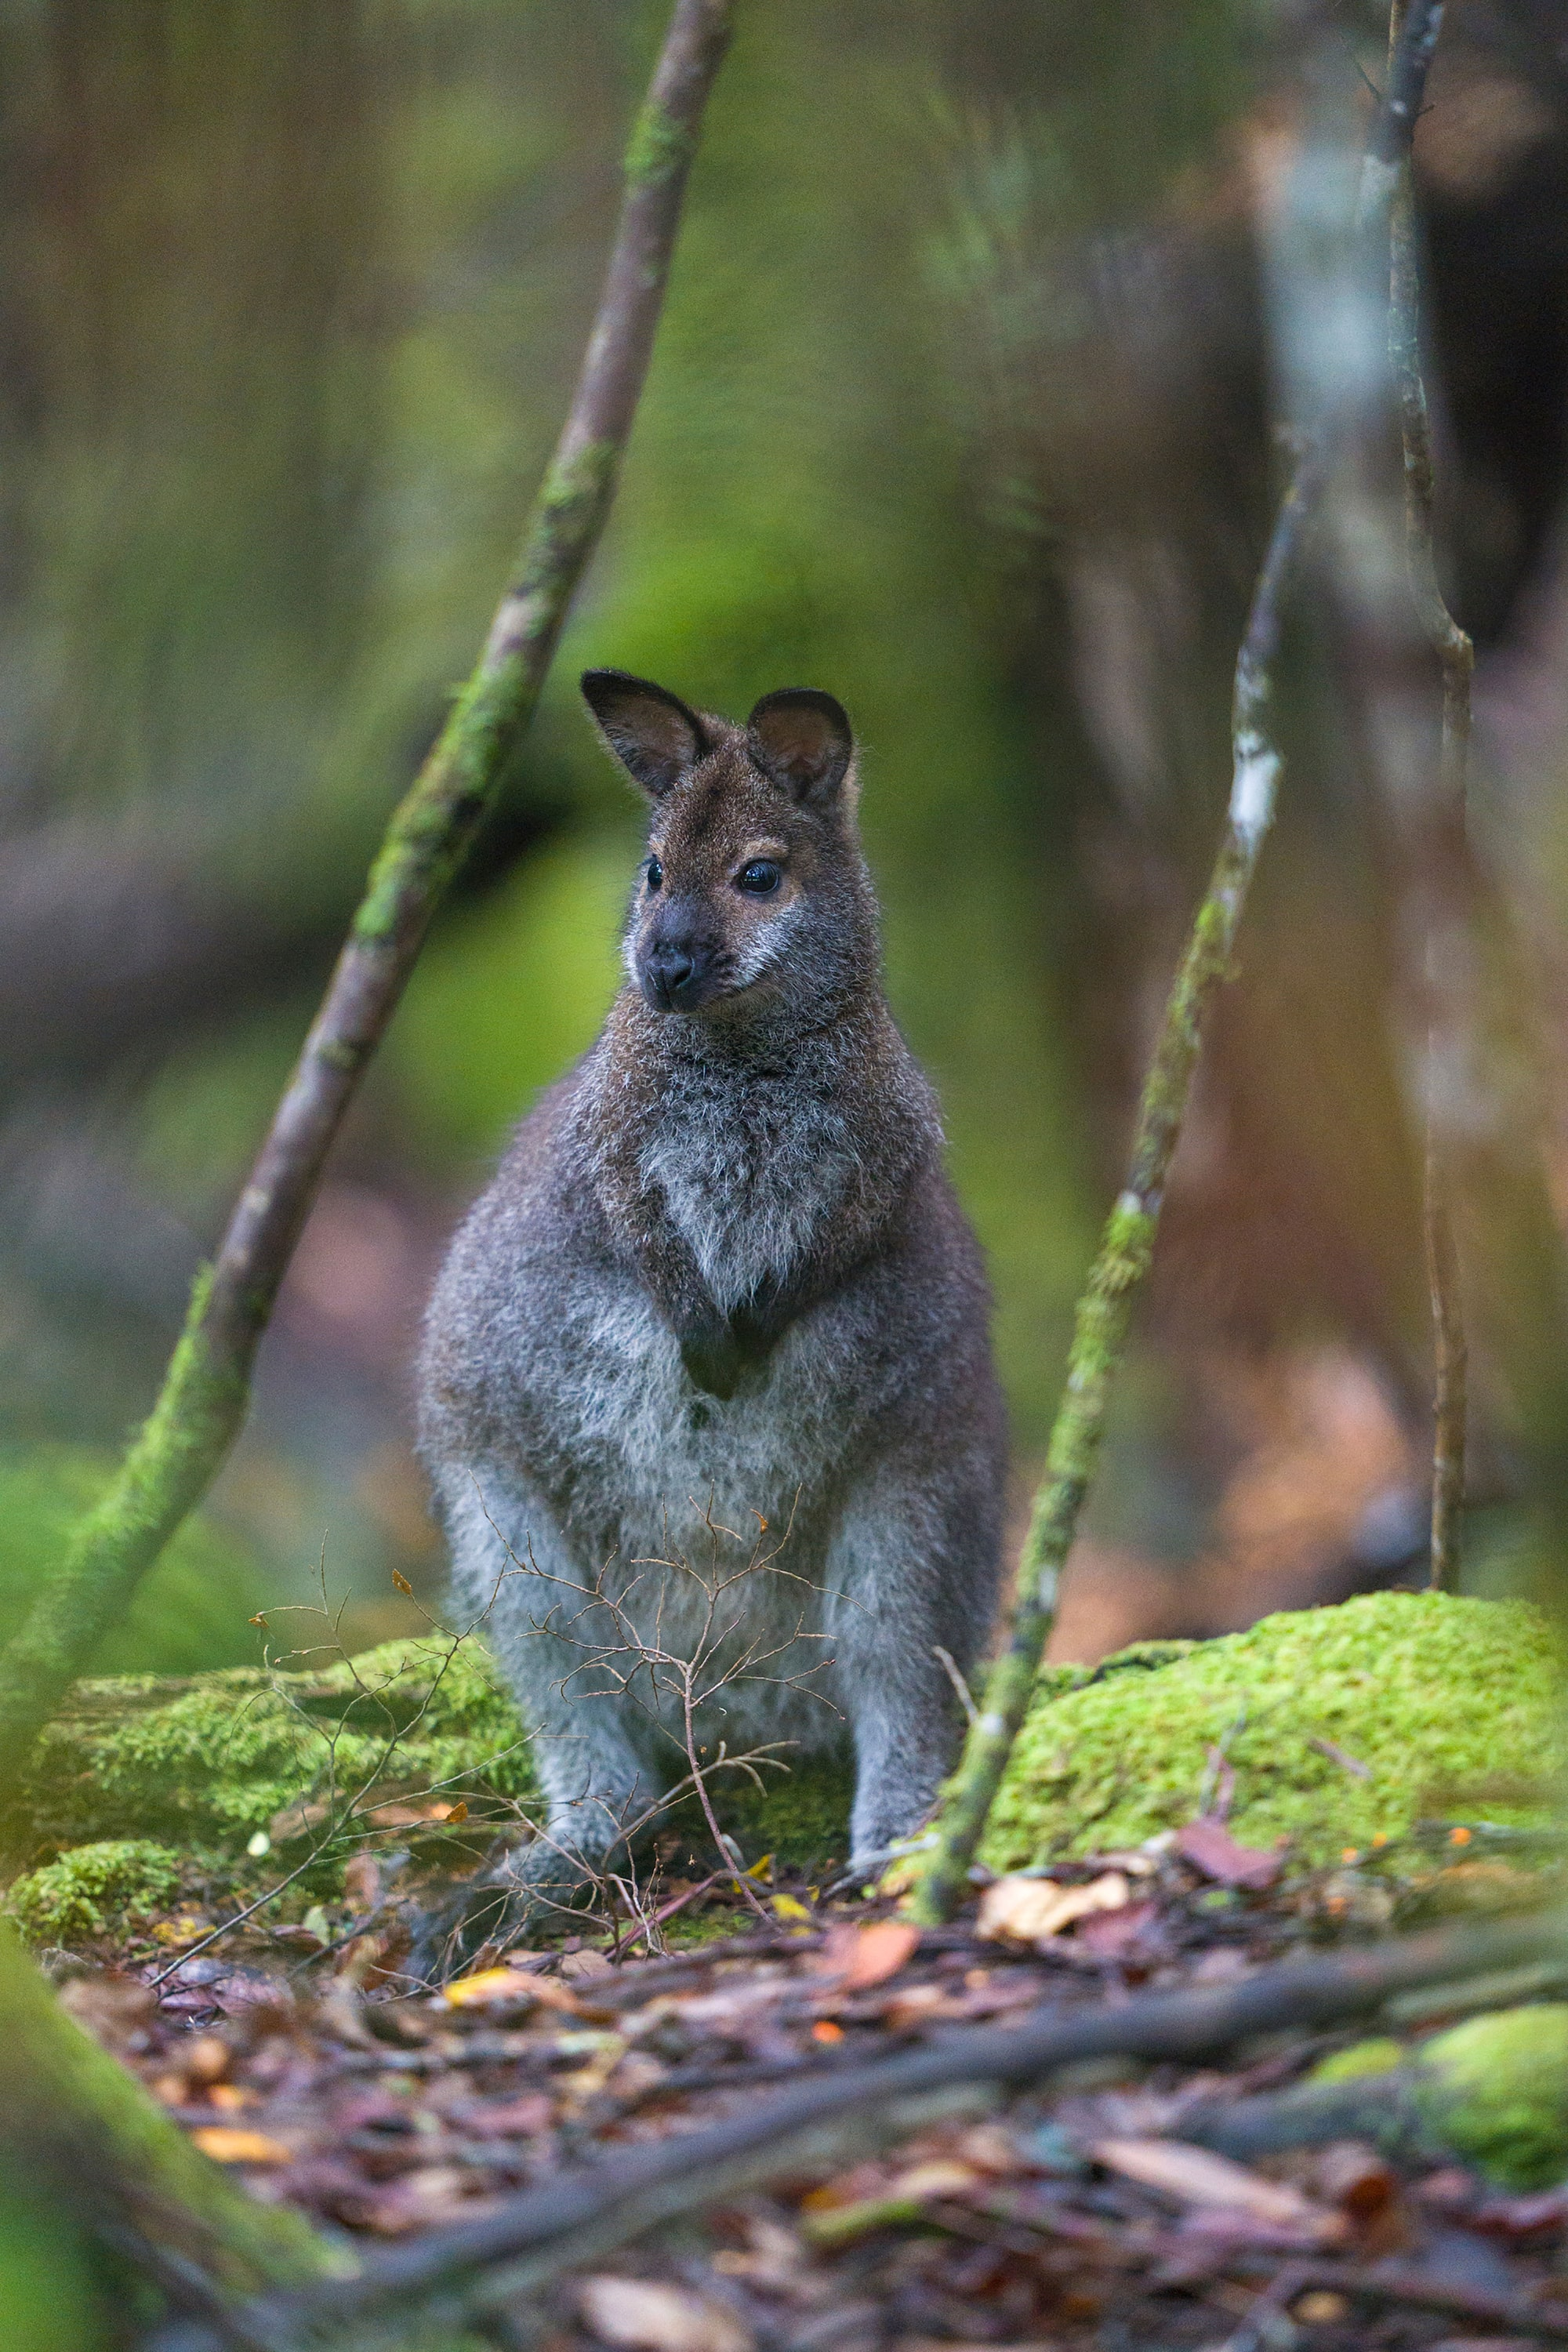 Joey spotted in Tasmania